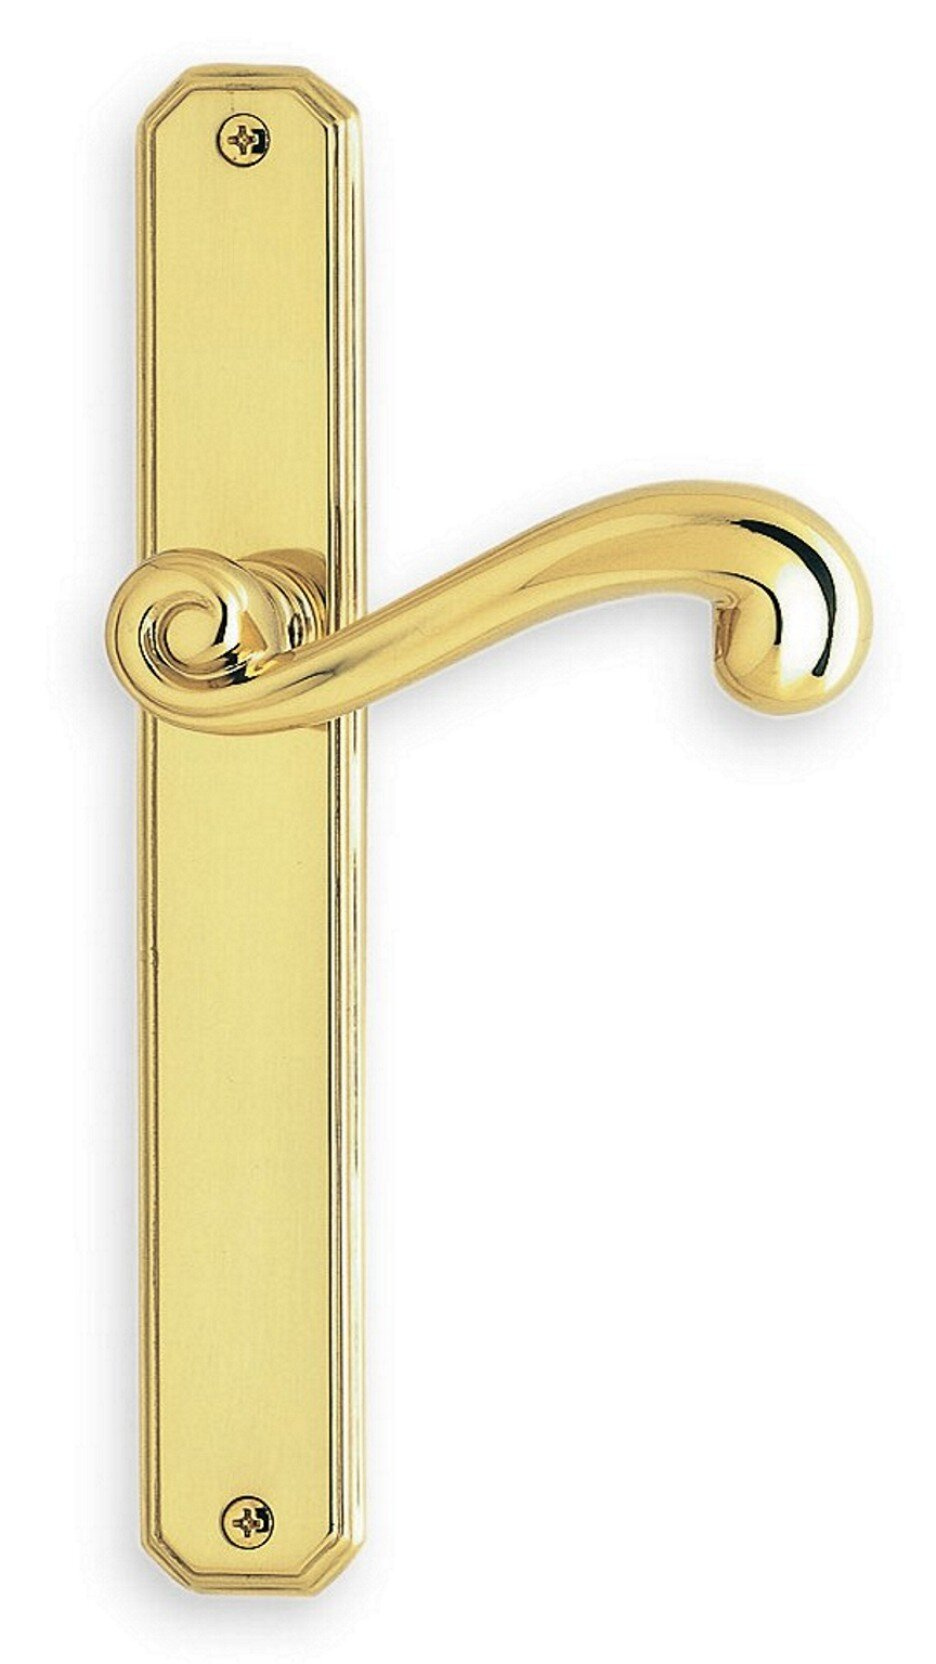 Solid brass latchset